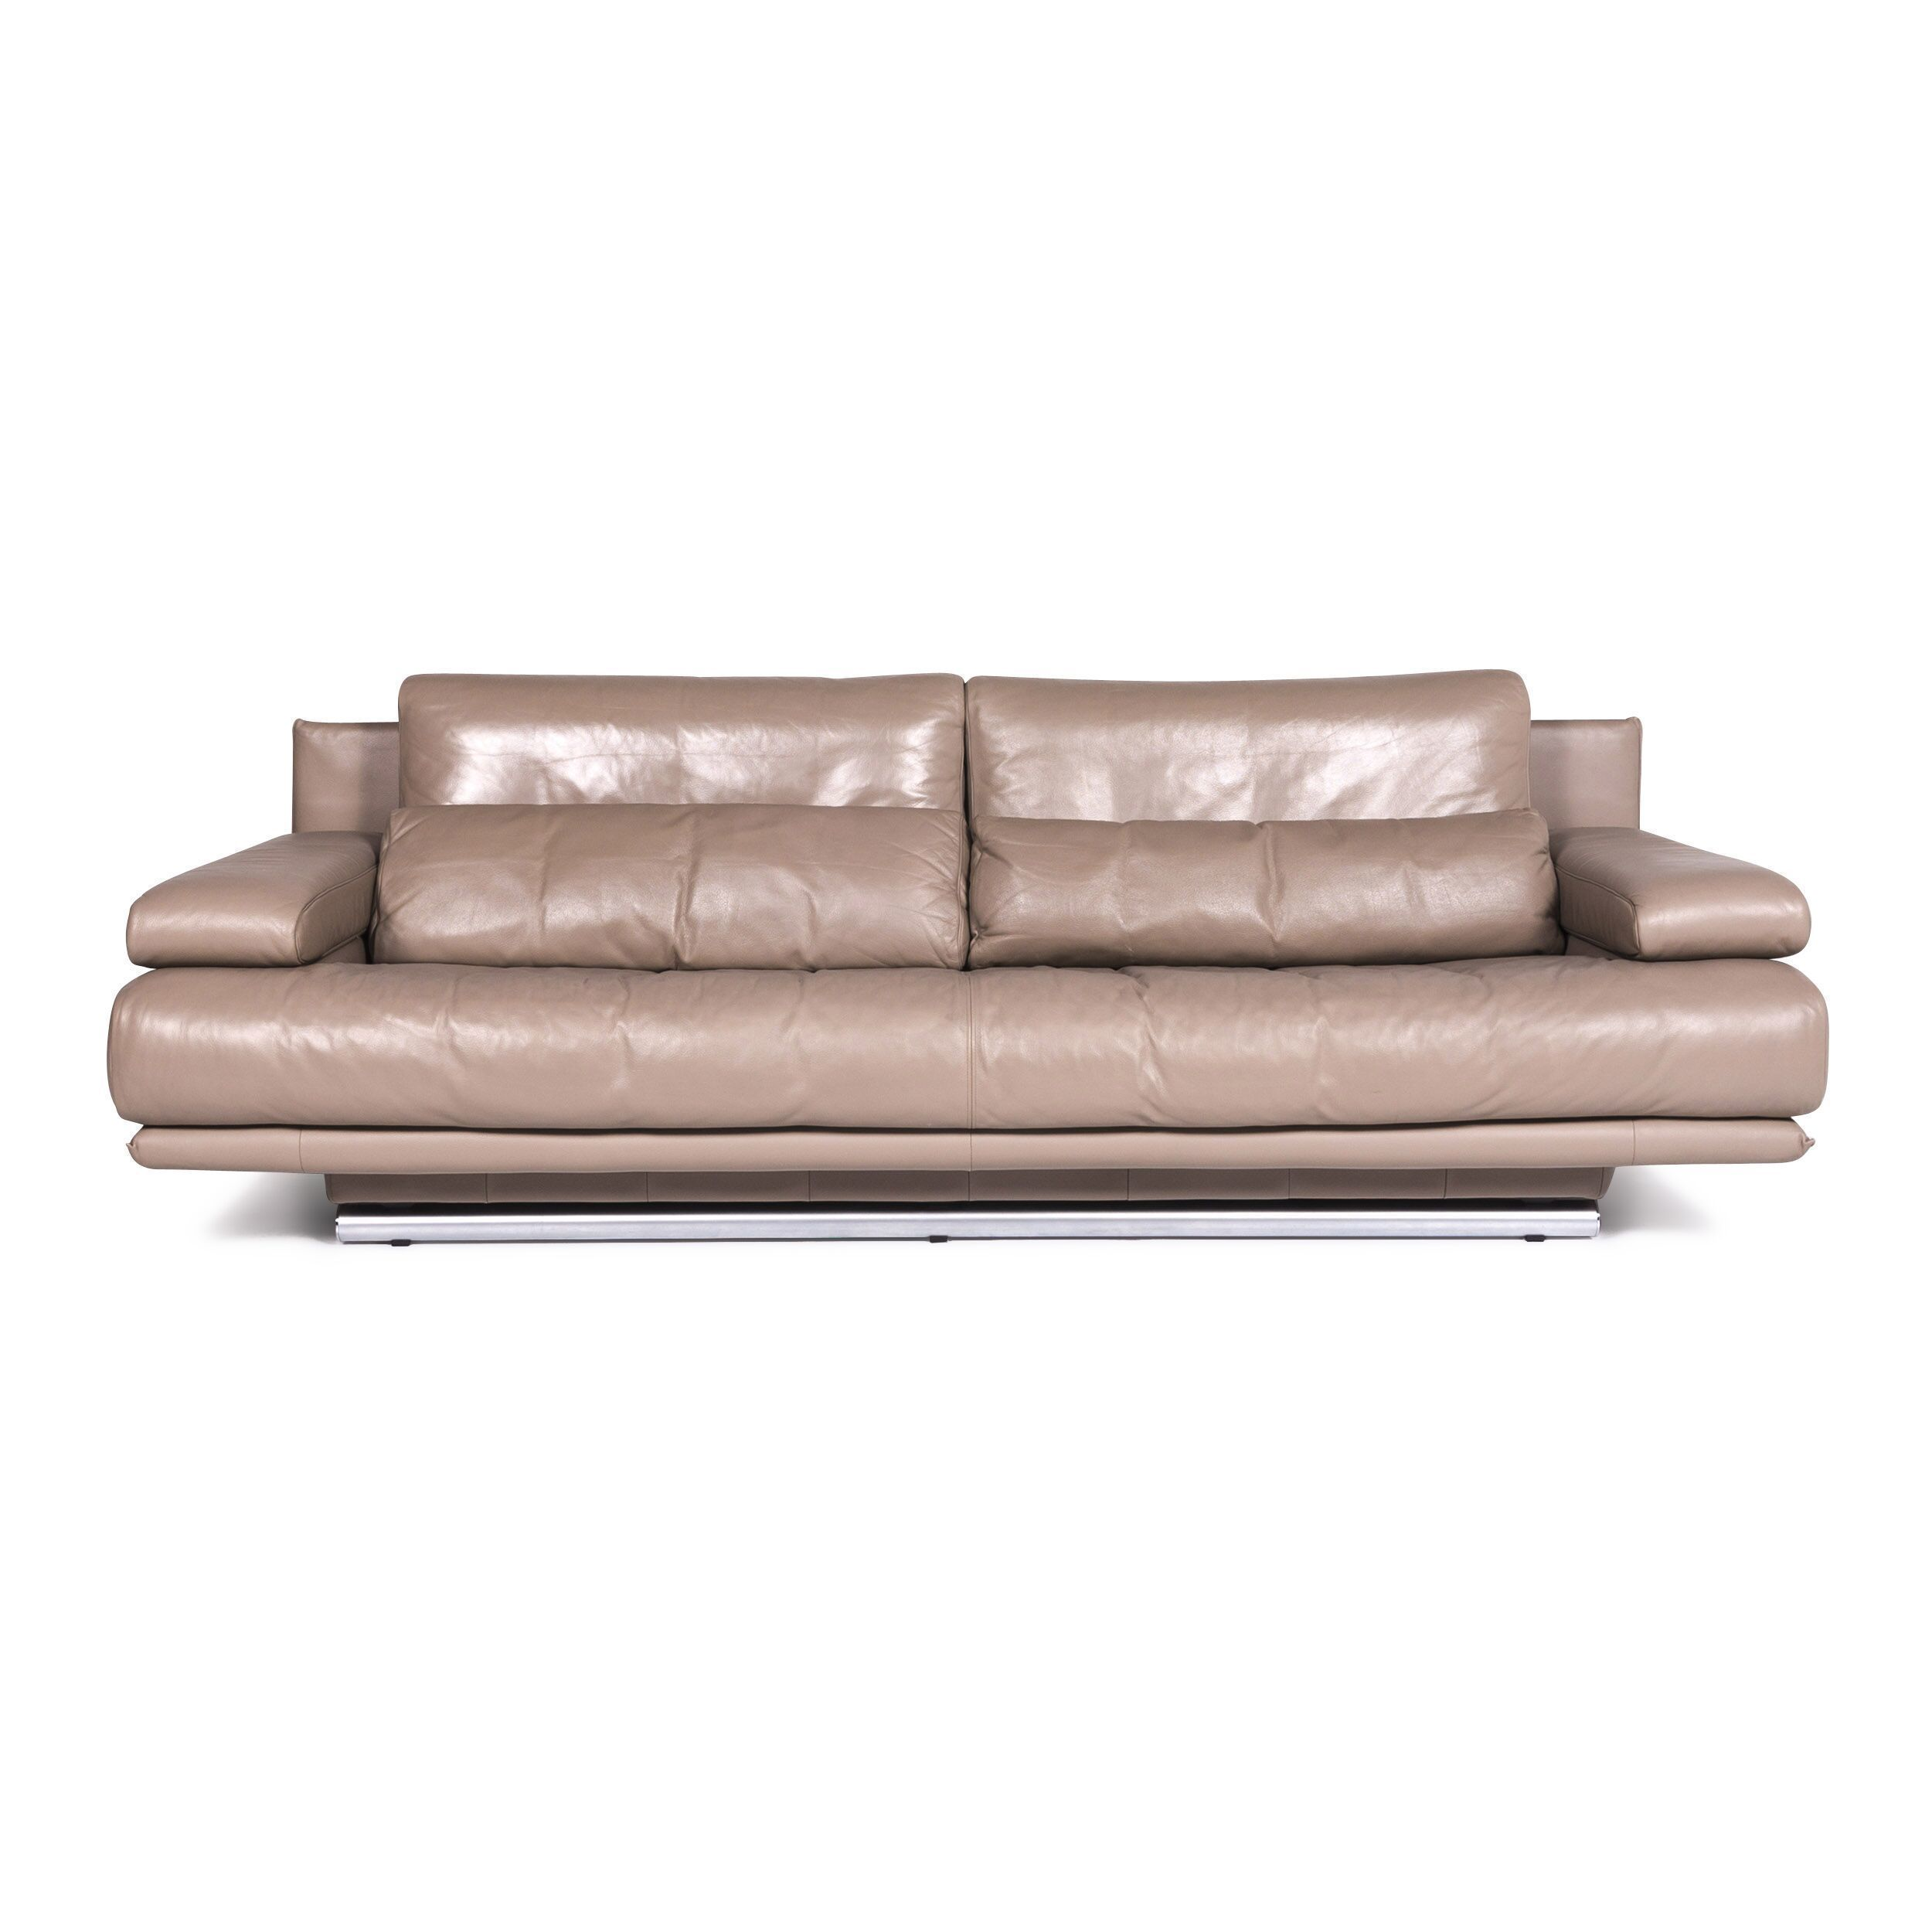 Rolf Benz Couch Rolf Benz 6500 Designer Leather Sofa Beige Three Seater Couch 9015